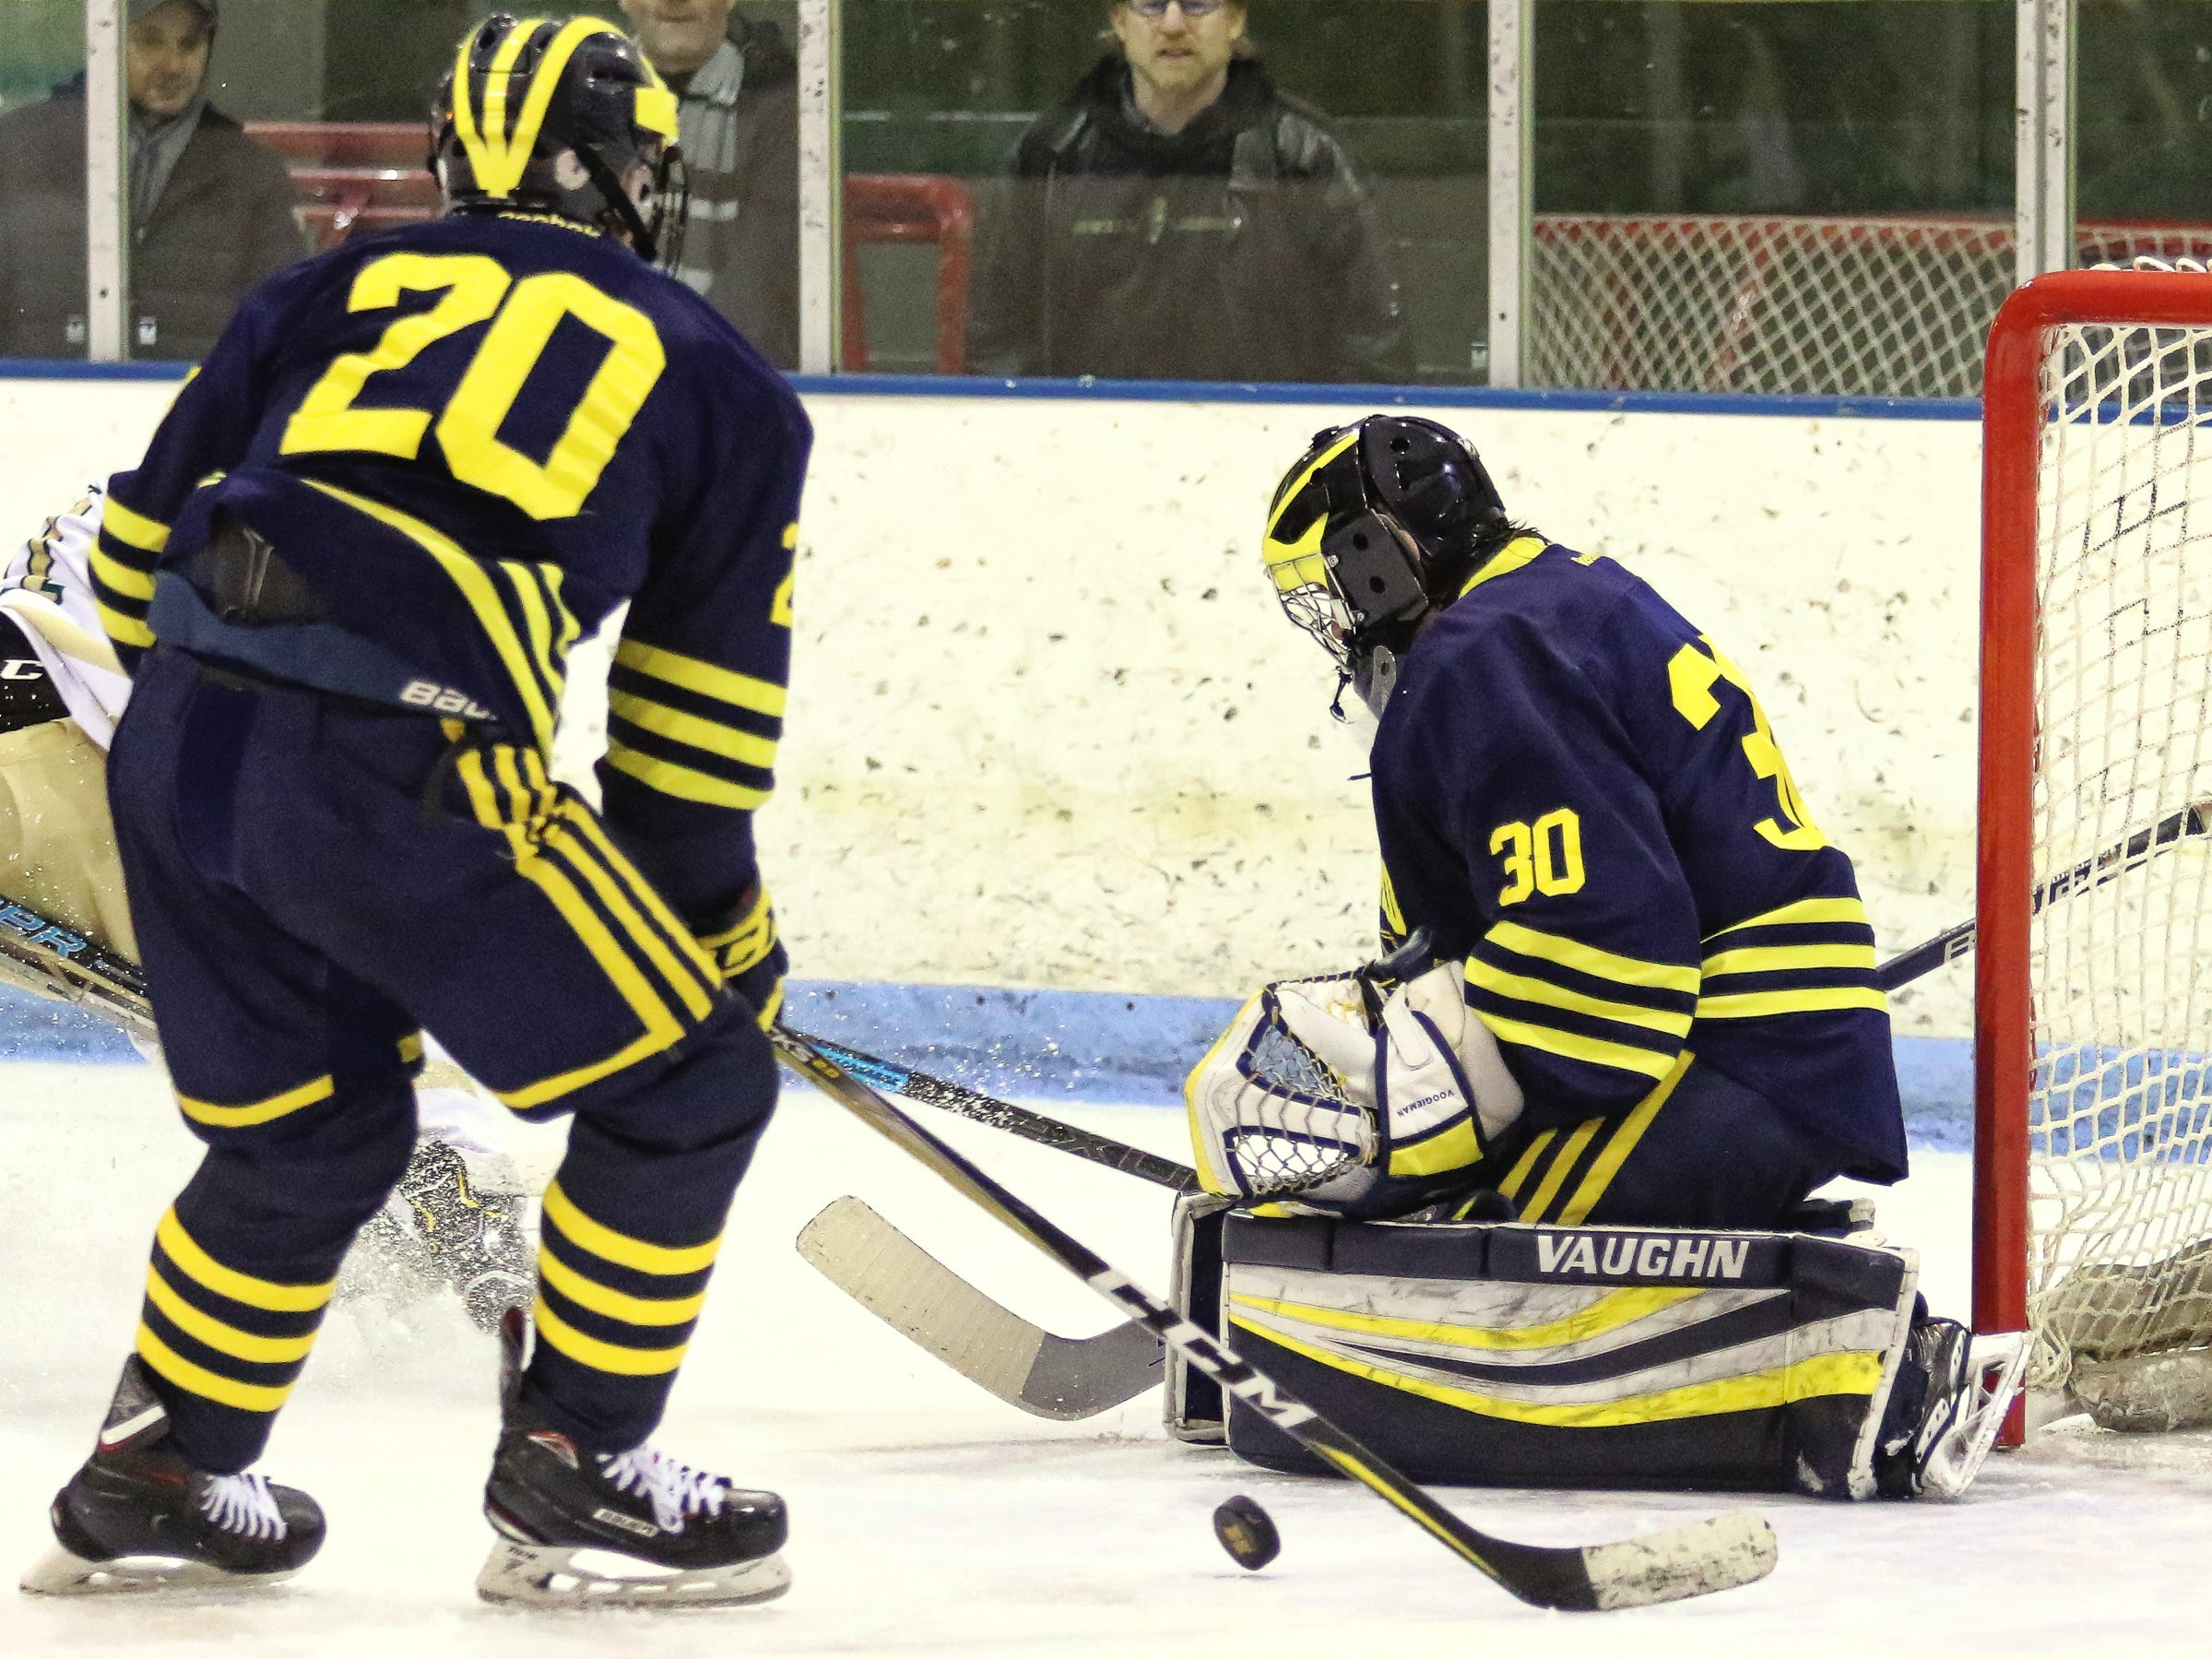 Brett Tome makes a save for Hartland while Grant Pietila (20) defends the front of the net in a 7-1 victory over Howell on Tuesday, Jan. 15, 2019.